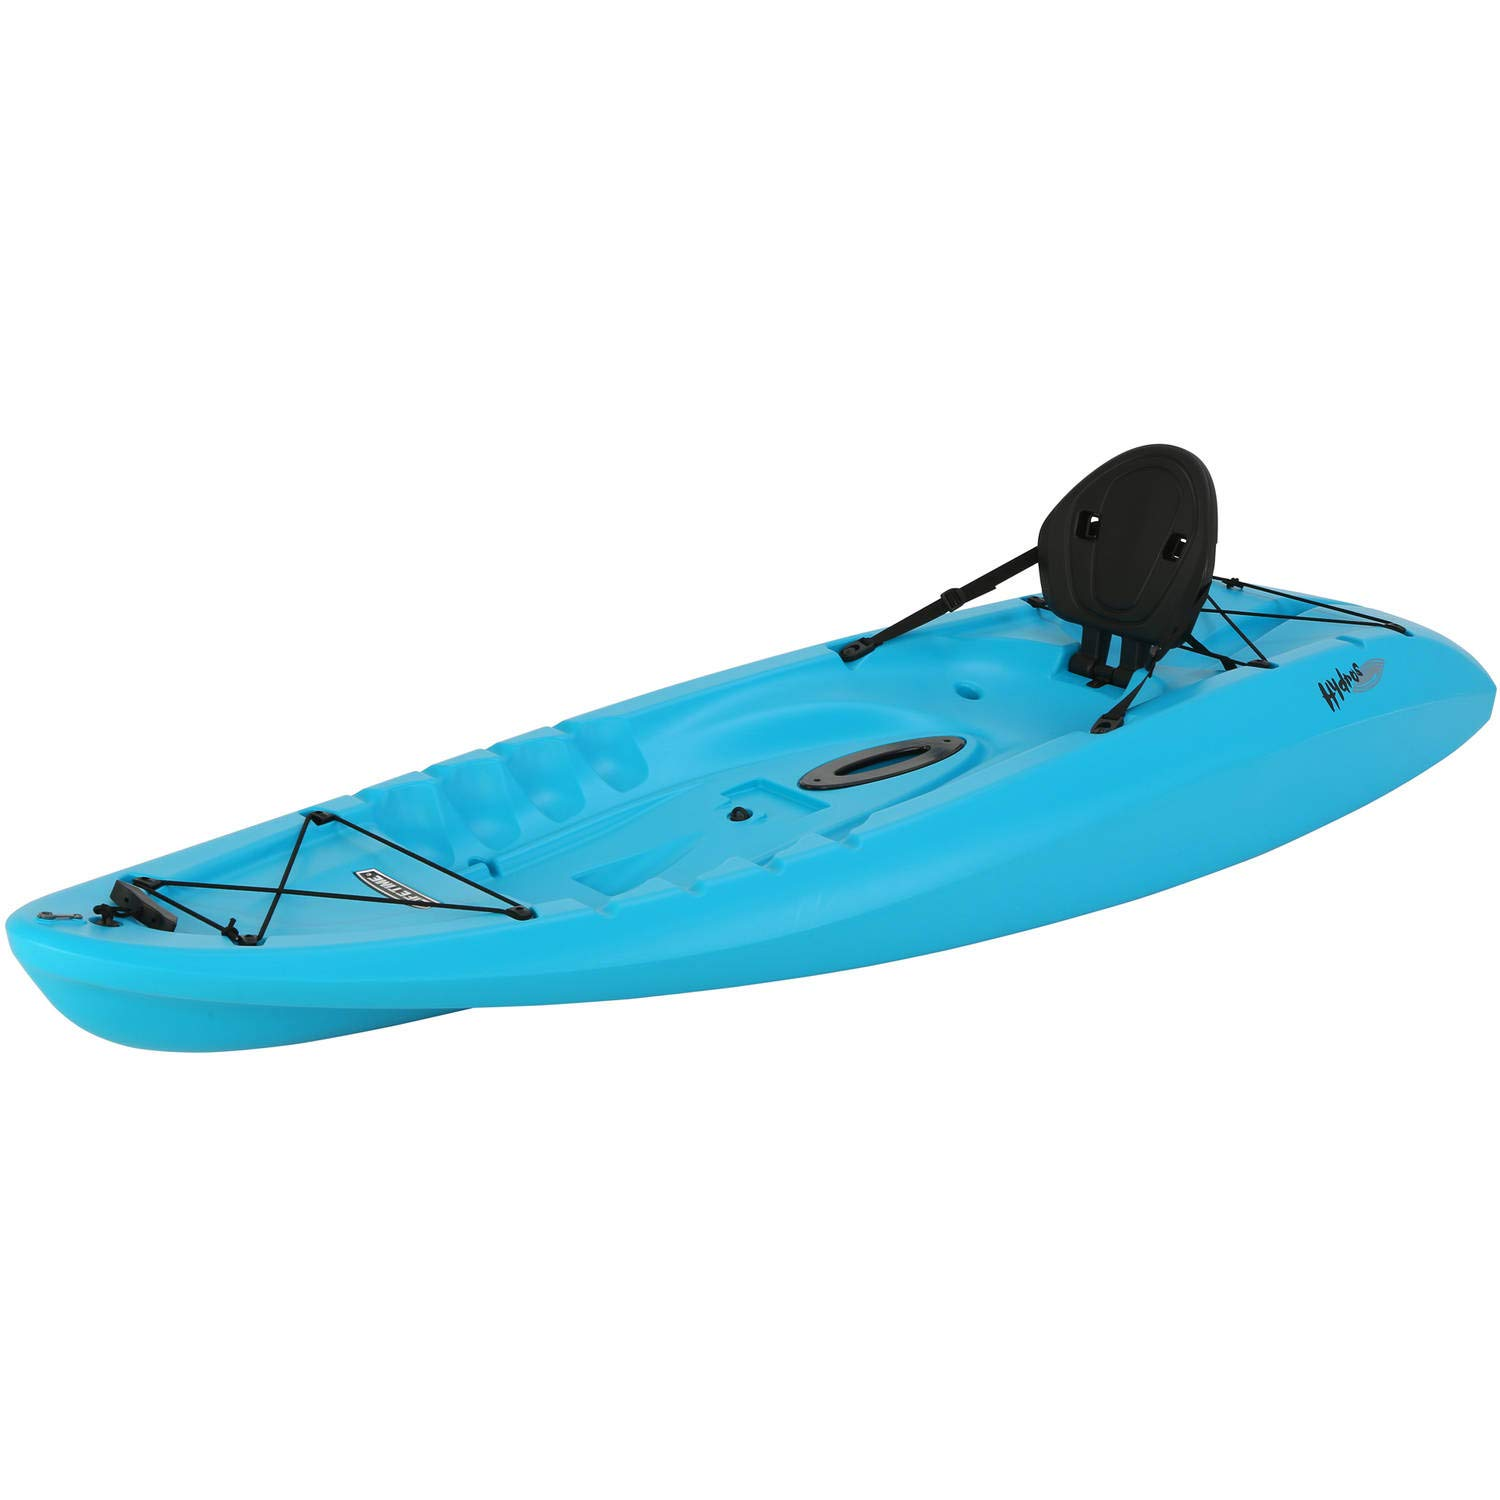 Lifetime Hydros 85 Fishing Holiday Vacation River Lake Sit-On-Top Kayak, Paddle Included (Glacier Blue)